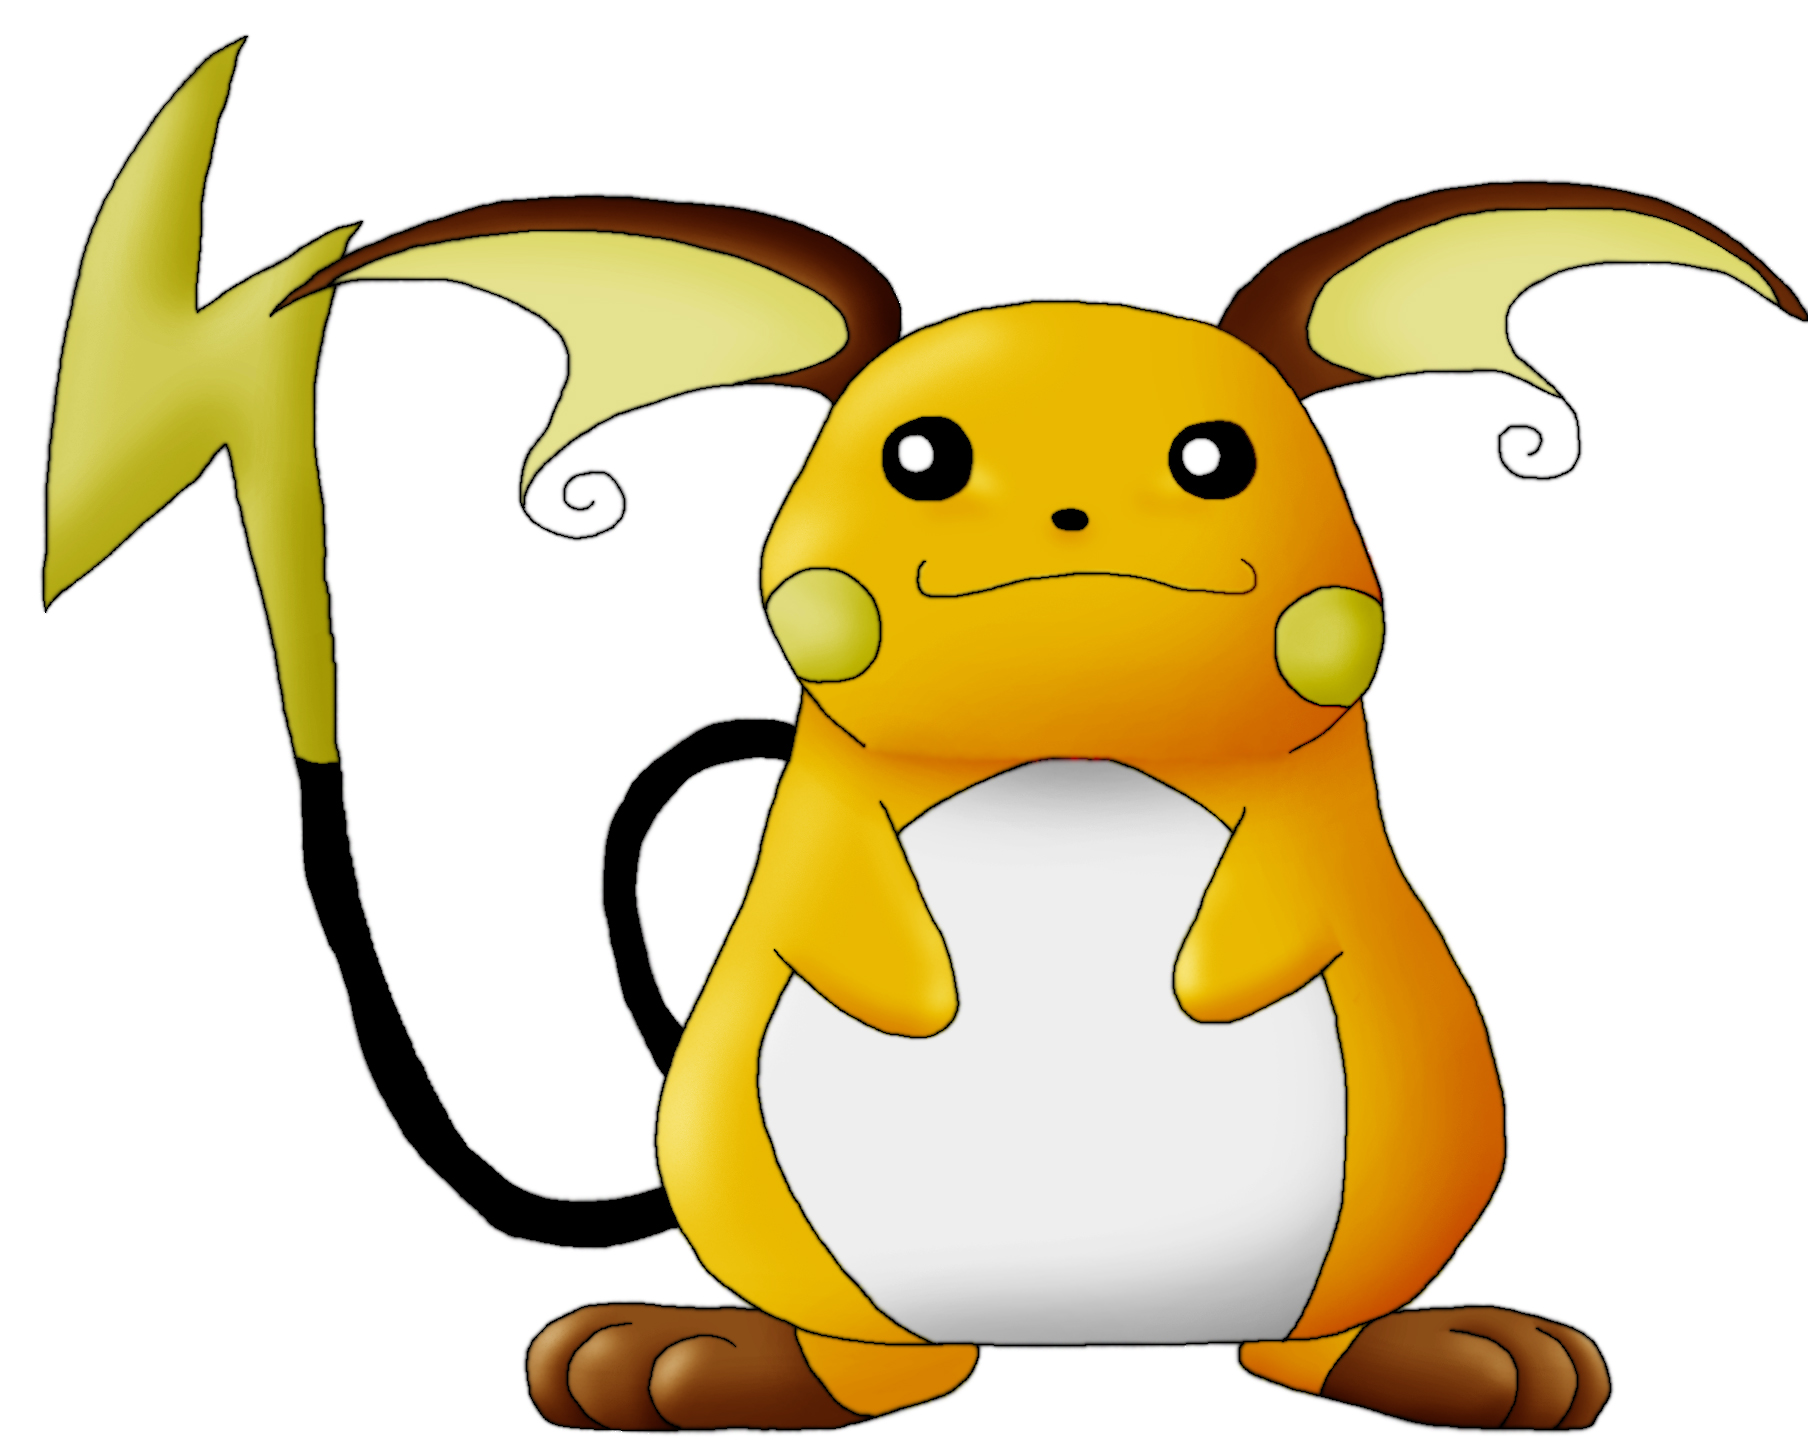 Raichu by Kenny21 on DeviantArt.